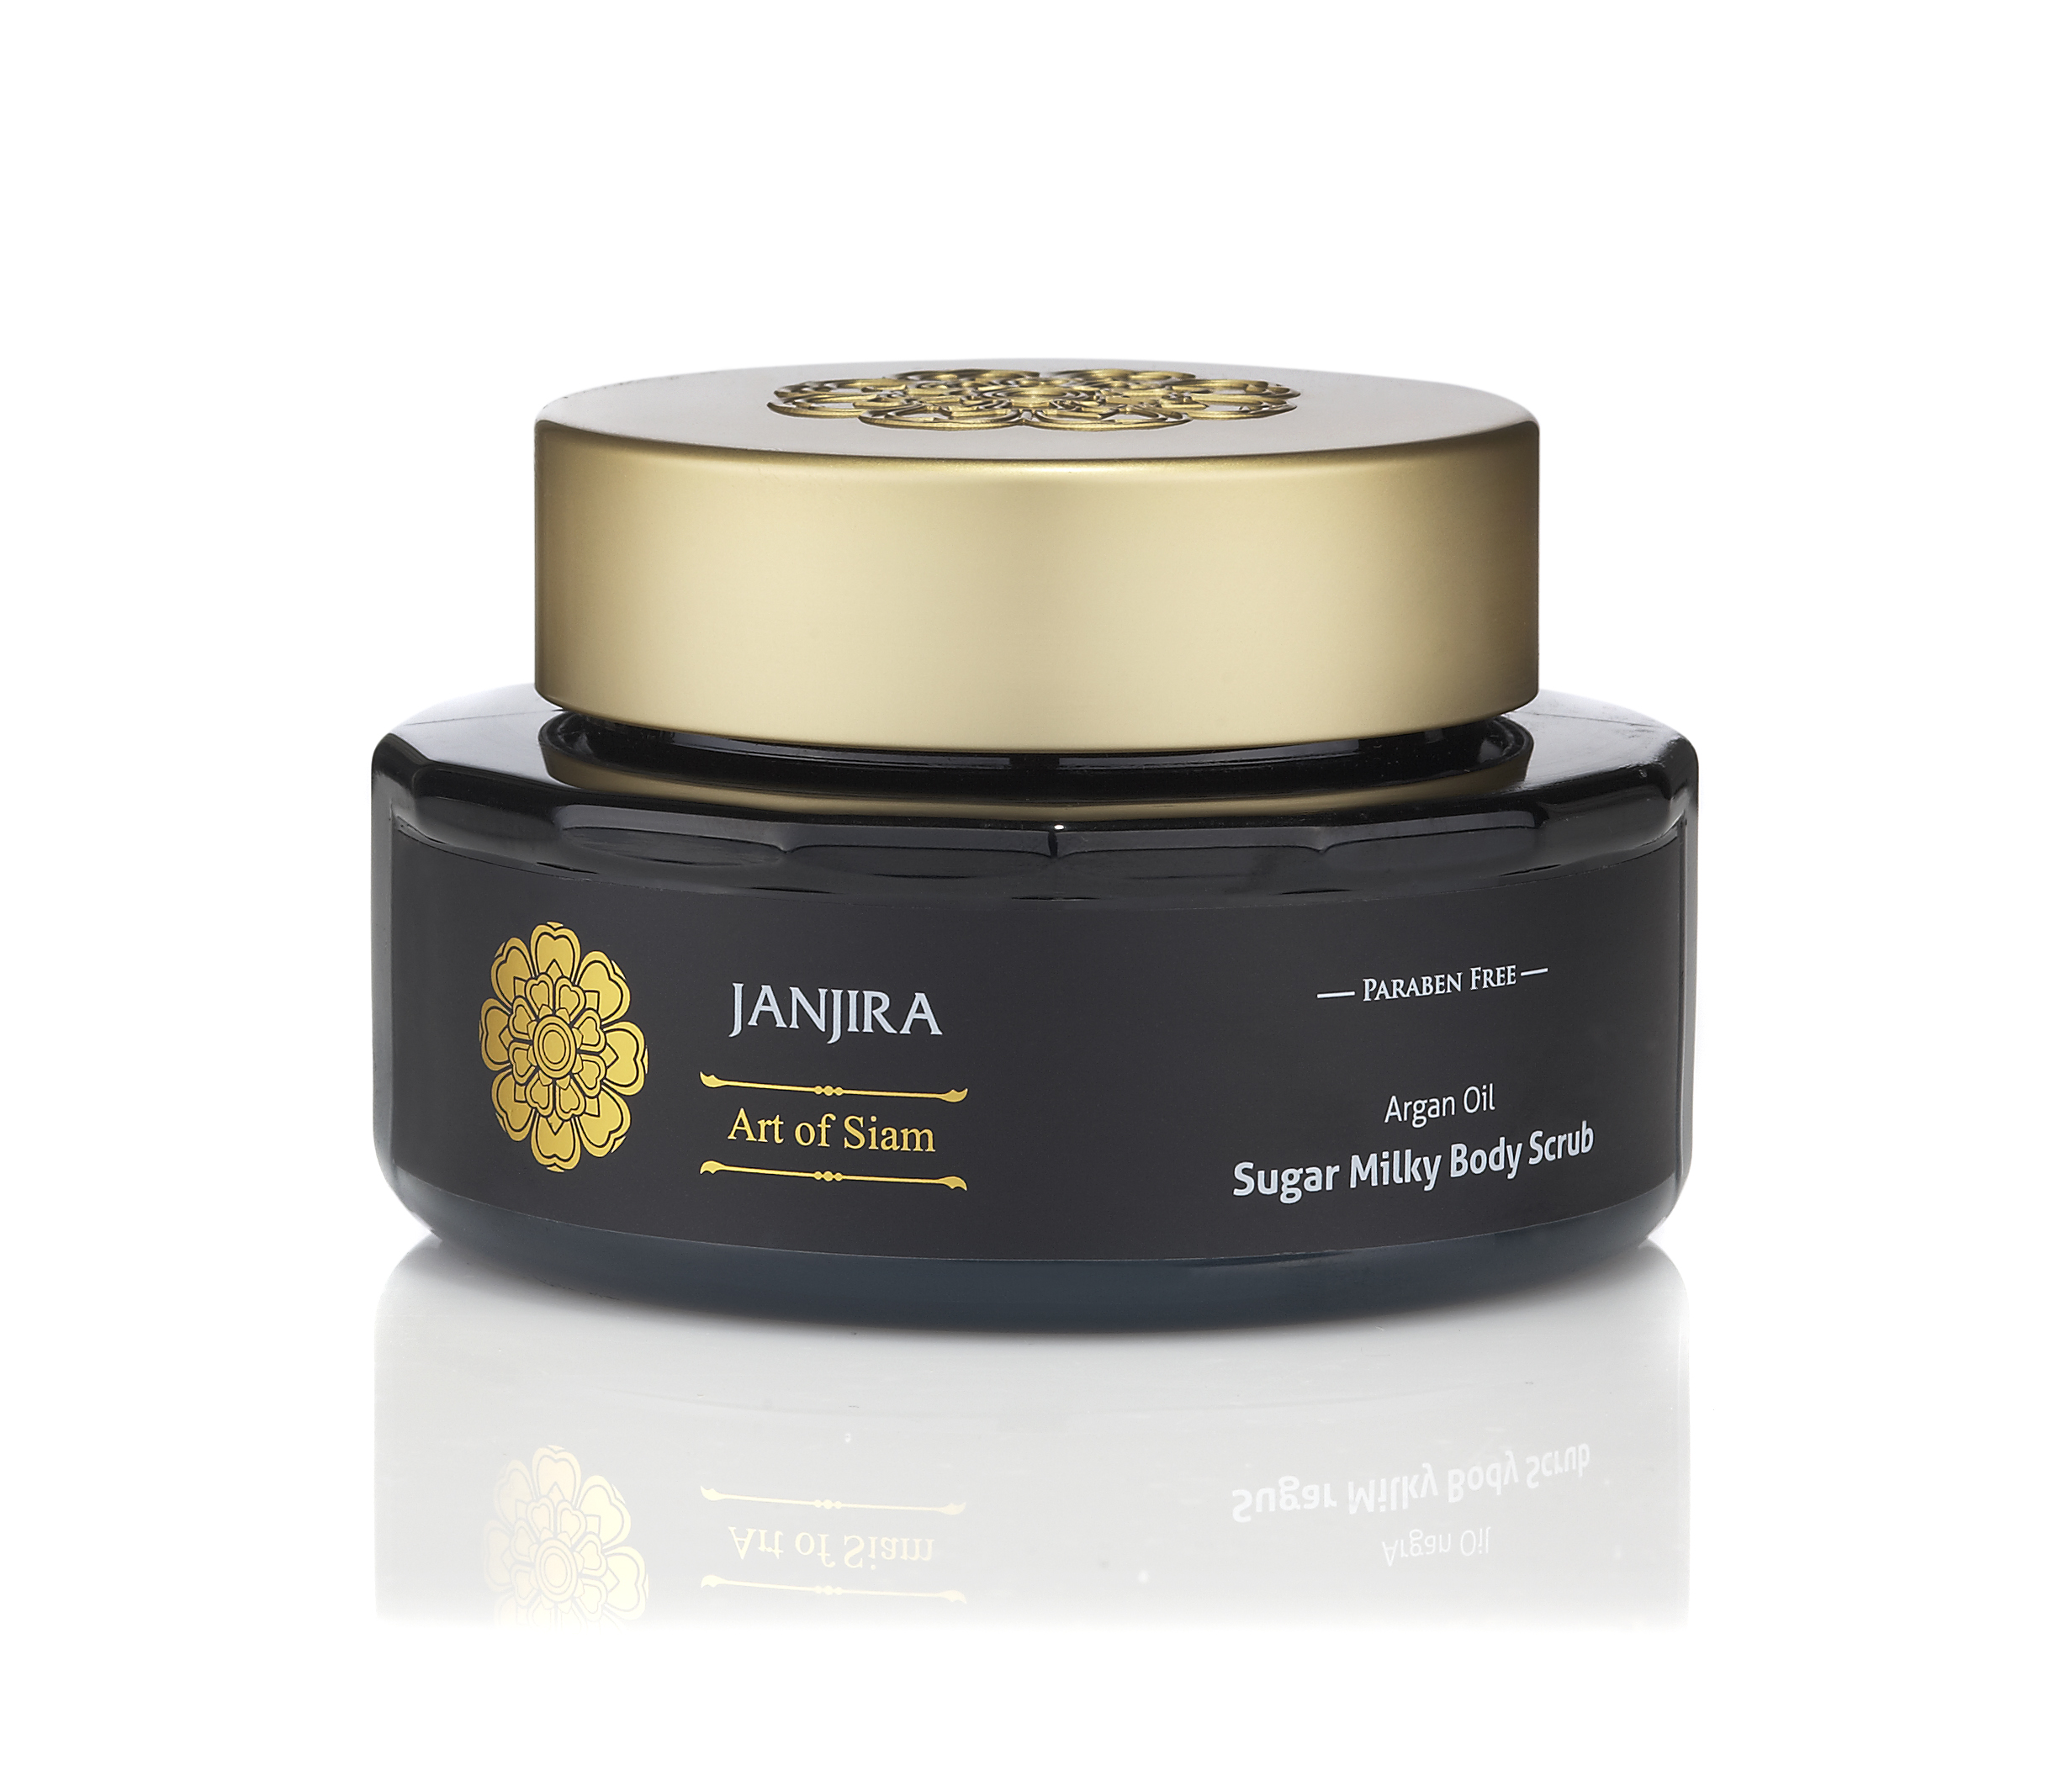 Janjira Argan Oil Sugar Milky Body Scrub